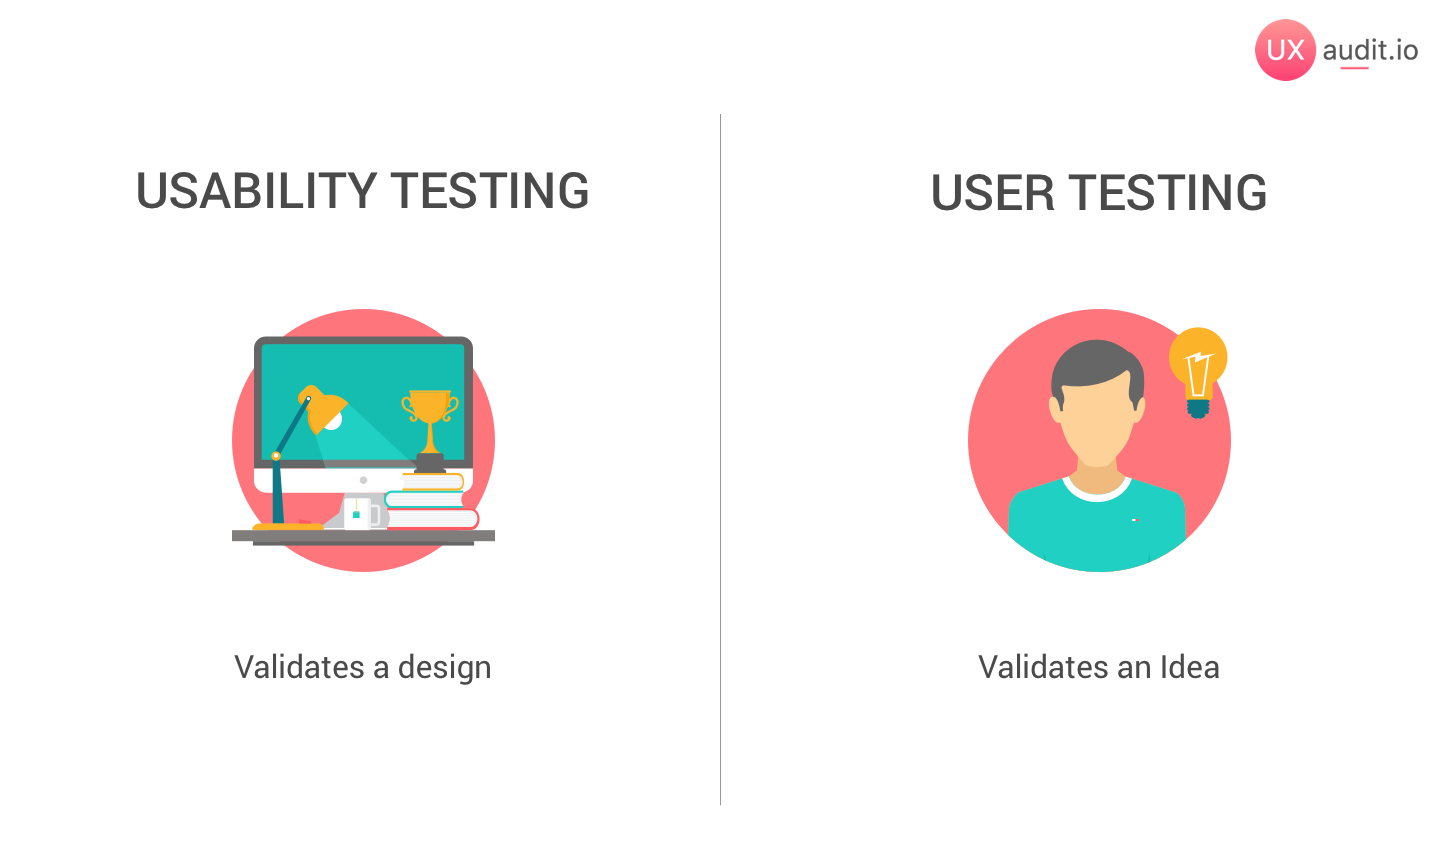 usability testing validates a design